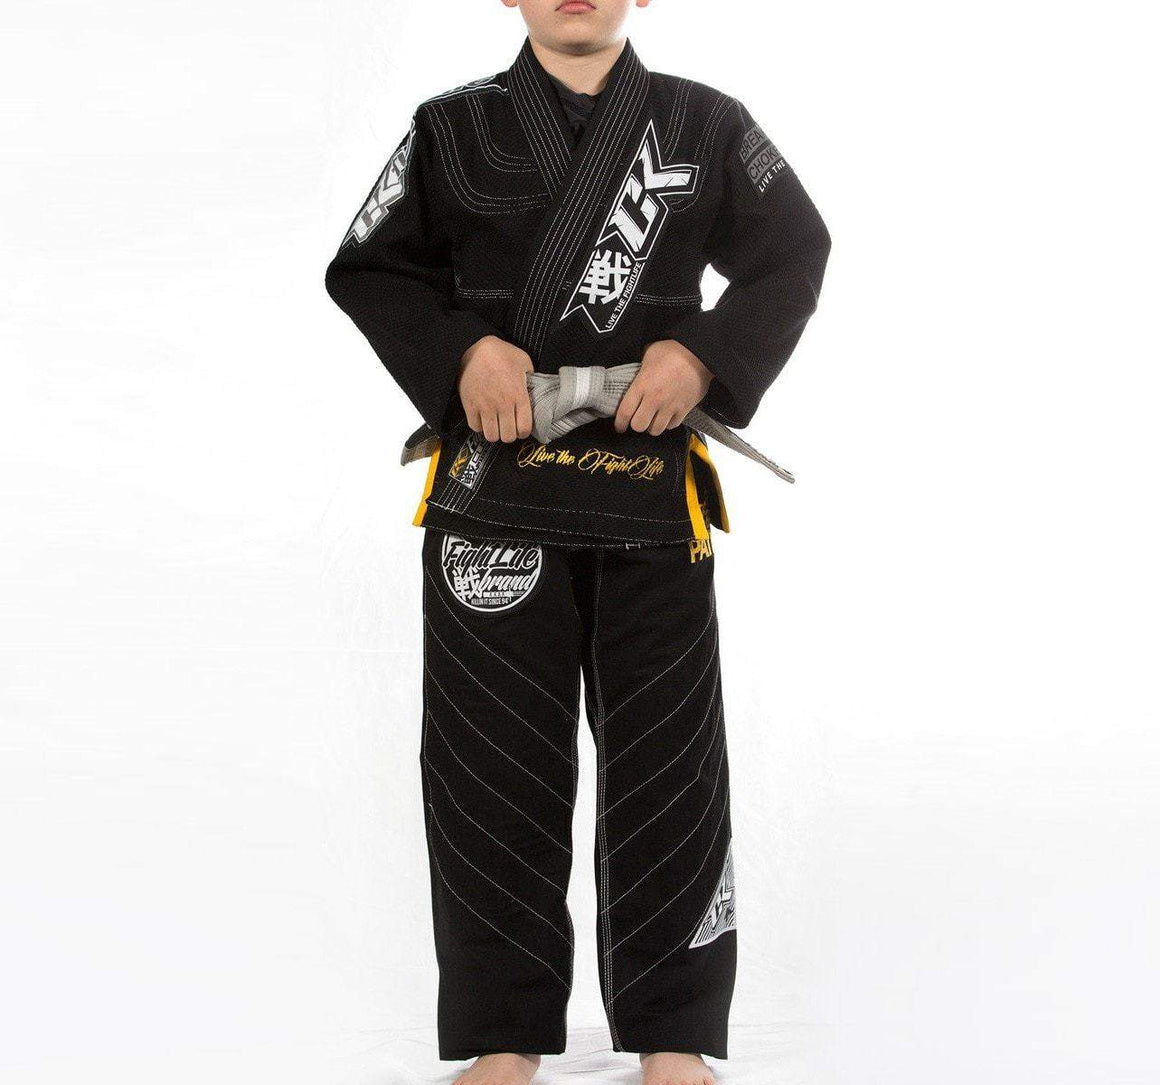 Contract Killer Discipline Kids Gi - Black - Front